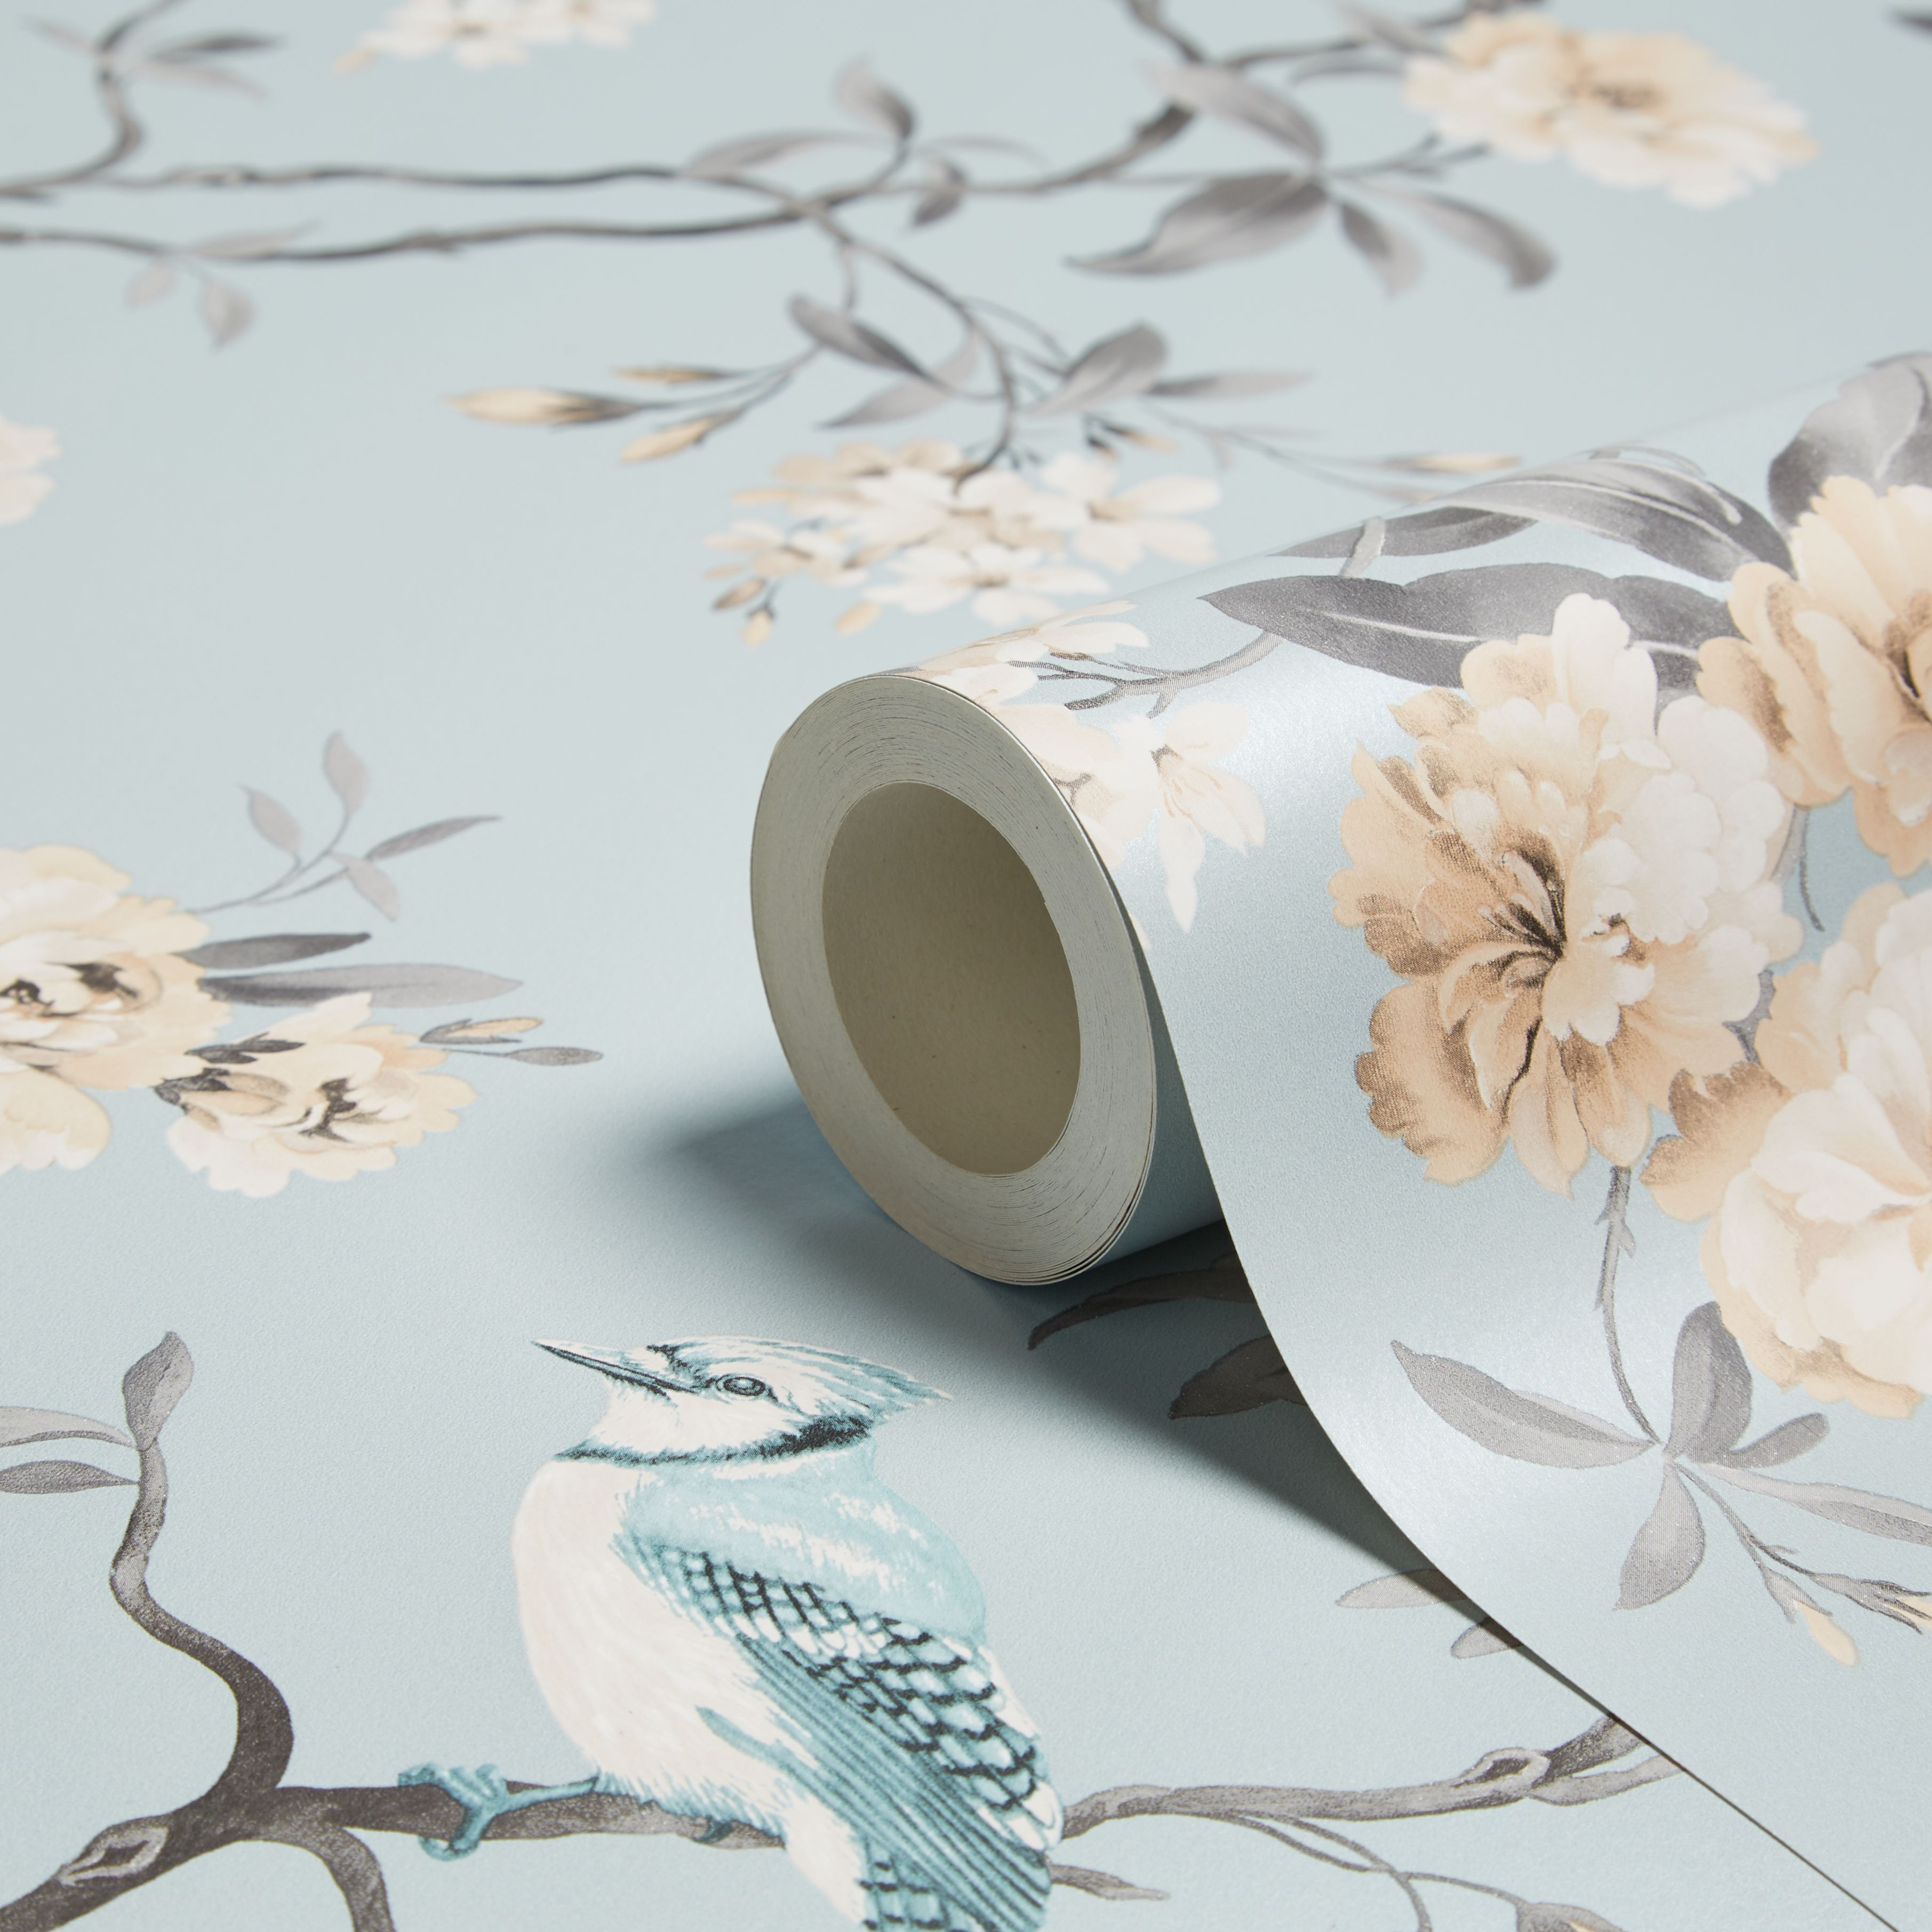 Teal Bedroom Wallpaper Fine Daccor Chinoiserie Teal Foliage Birds Wallpaper